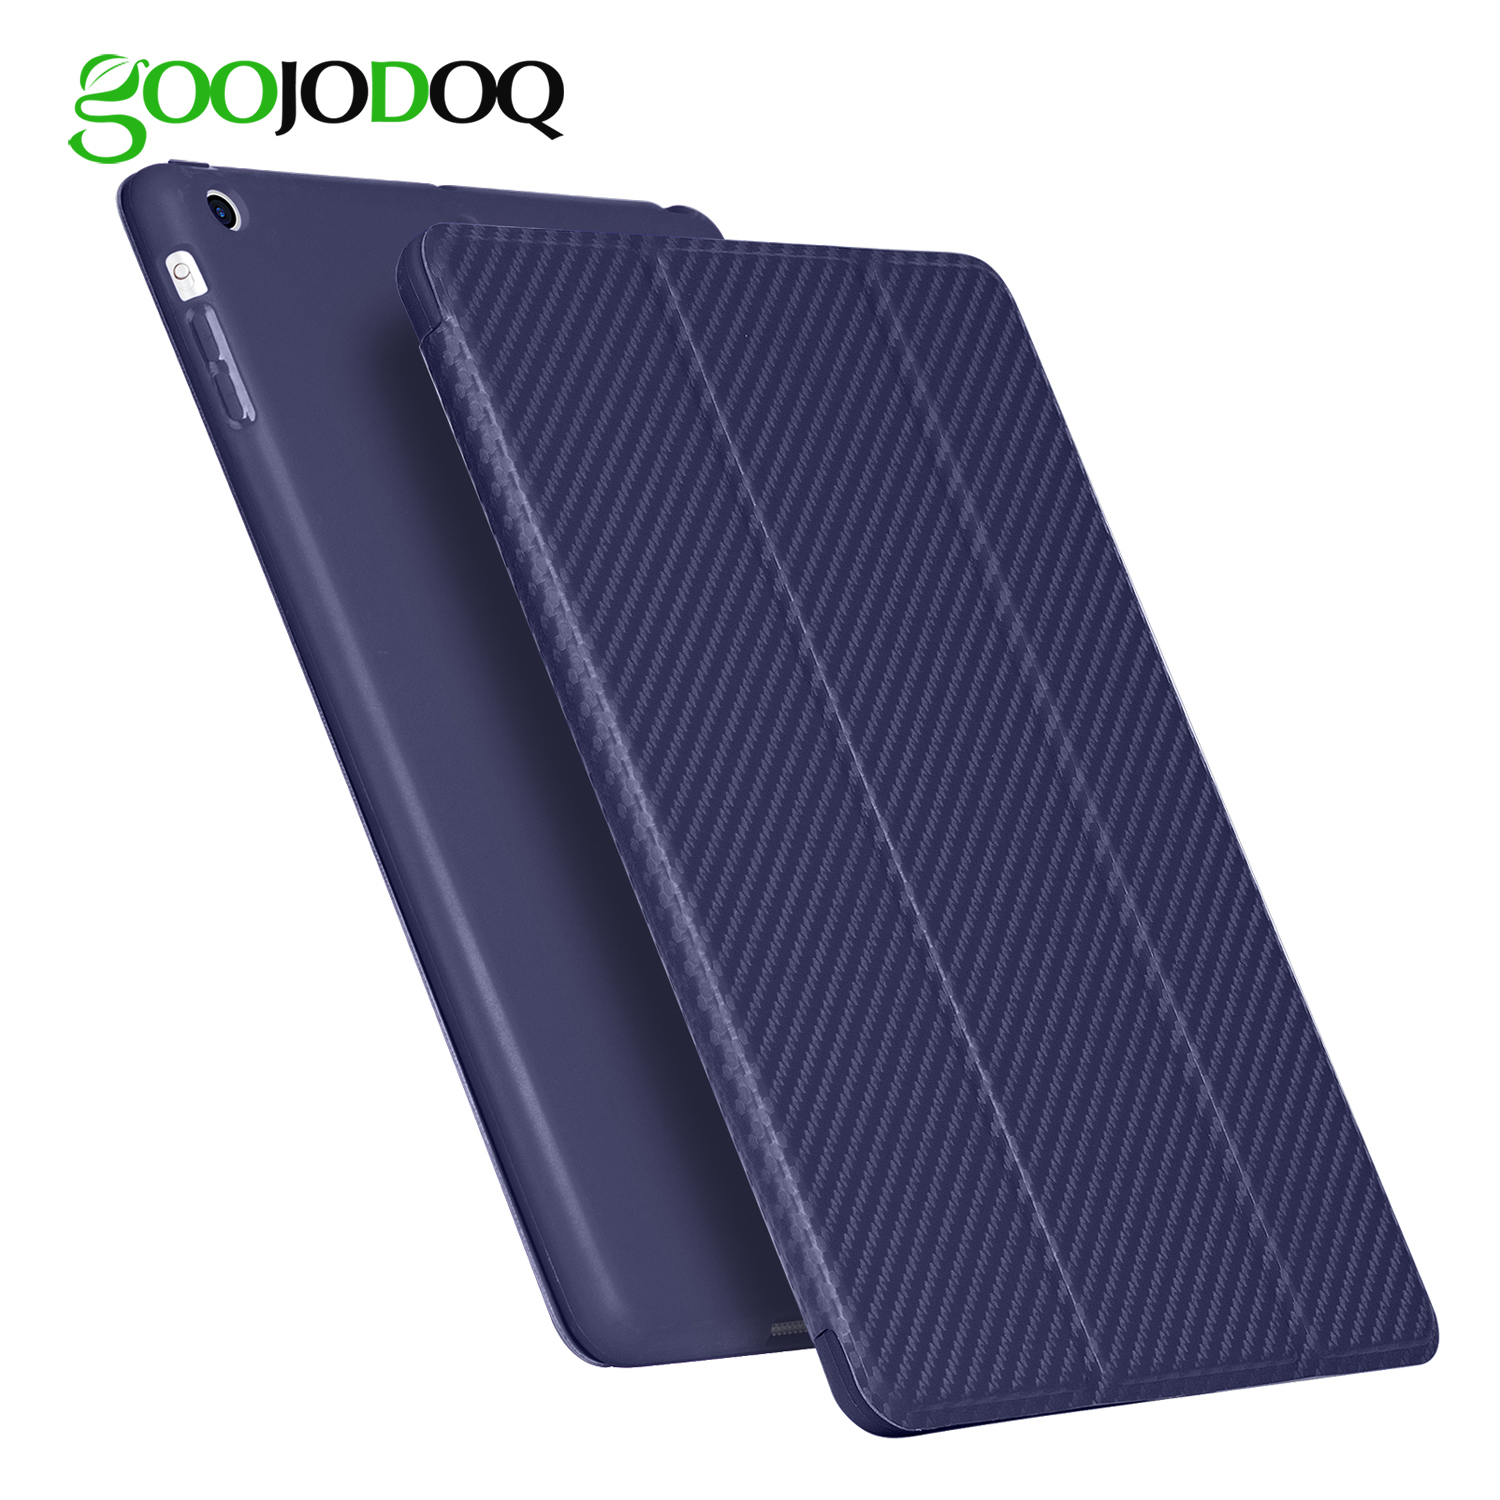 Case for iPad Air 2, GOOJODOQ Silicone Back Case for Apple iPad Air 2 iPad 6 PU Leather Smart Cover A1566 A1567 Auto Sleep/Wake